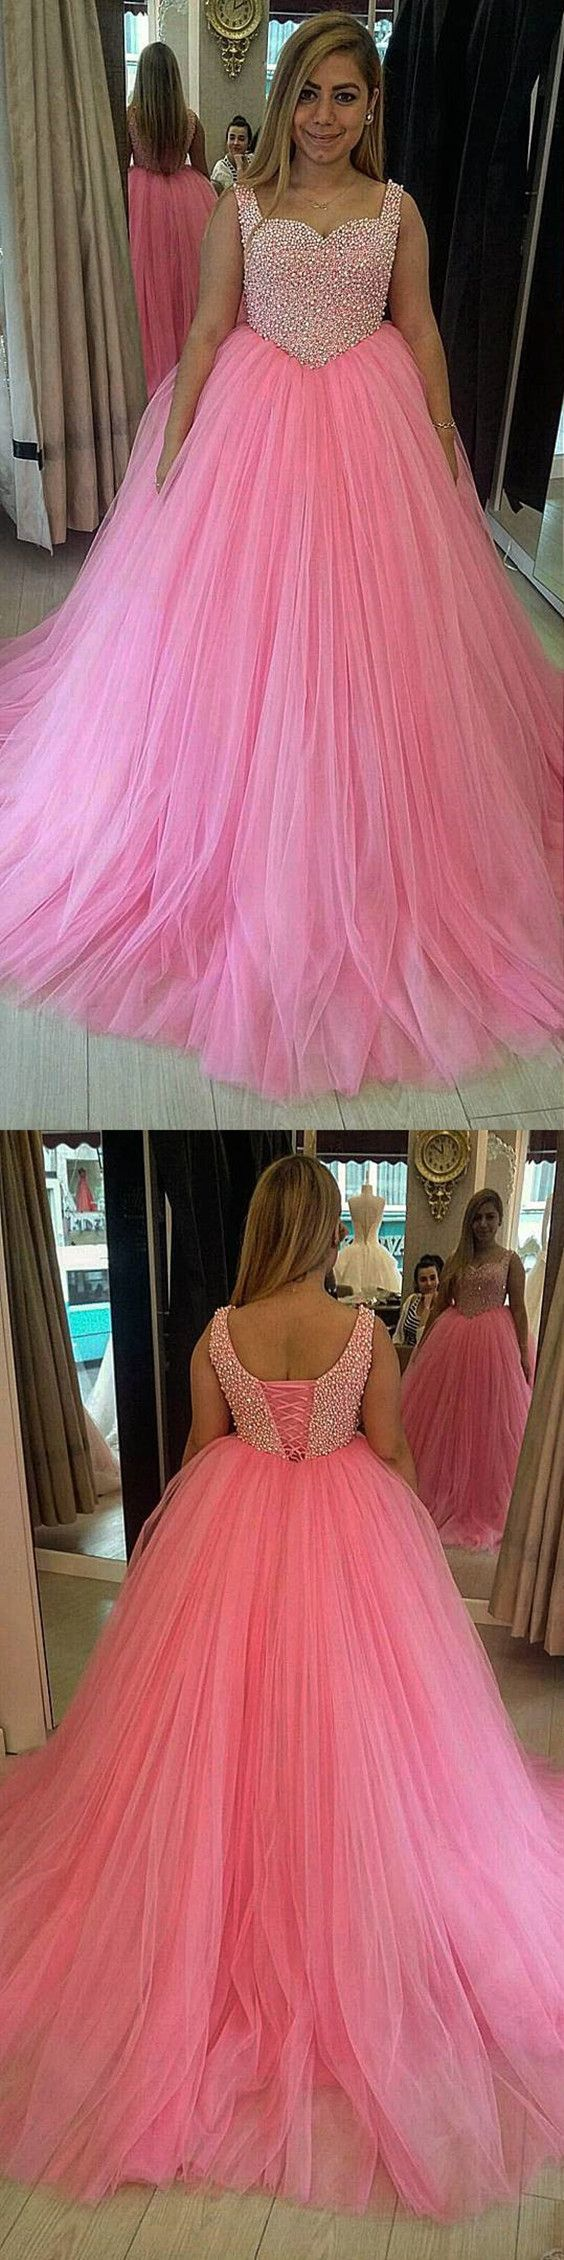 Baby Pink Tulle Sweetheart Ball Gowns Quinceanera Dresses For Sweet 16